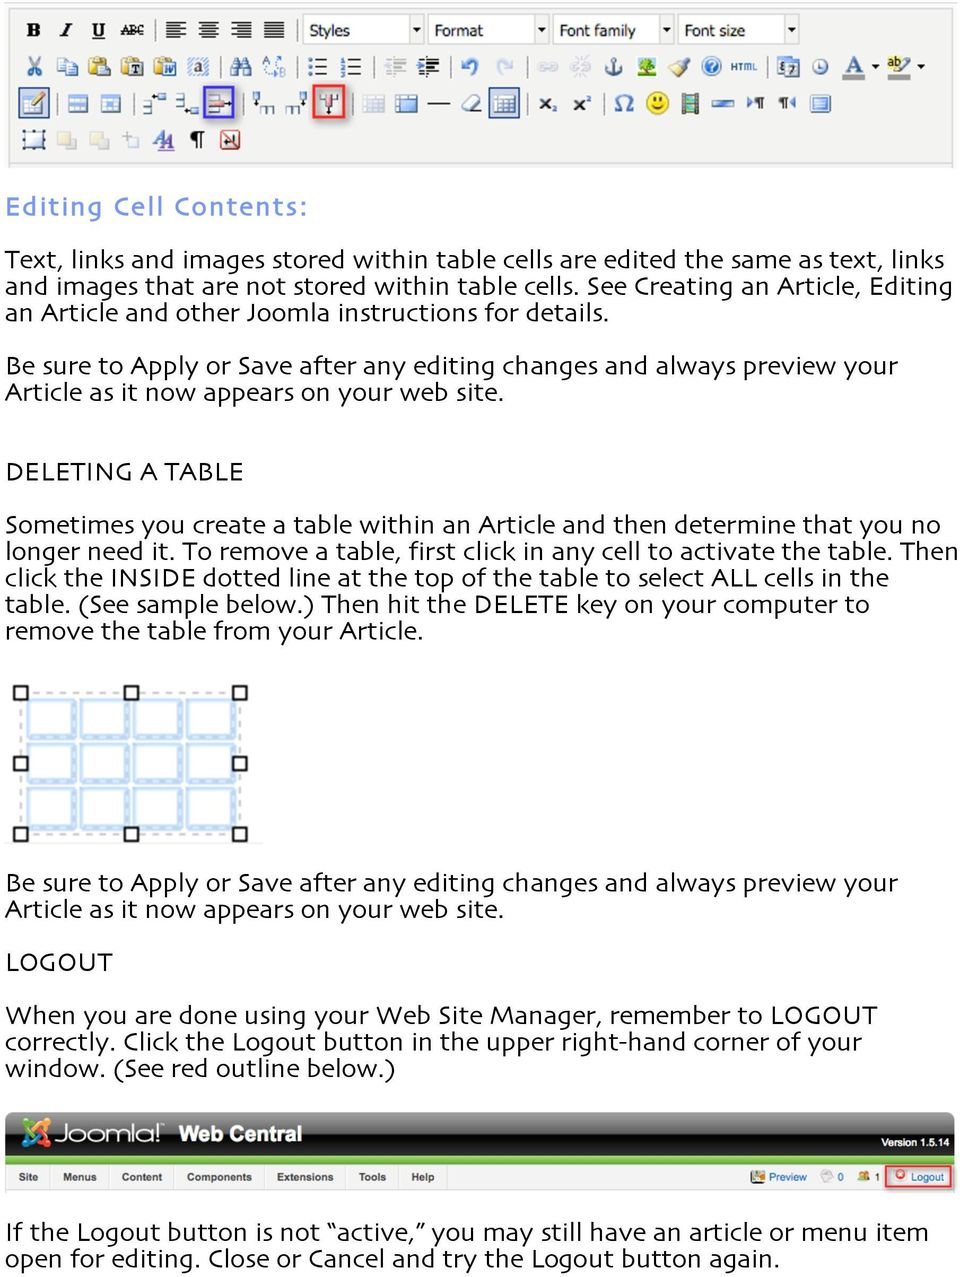 Be sure to Apply or Save after any editing changes and always preview your Article as it now appears on your web site.